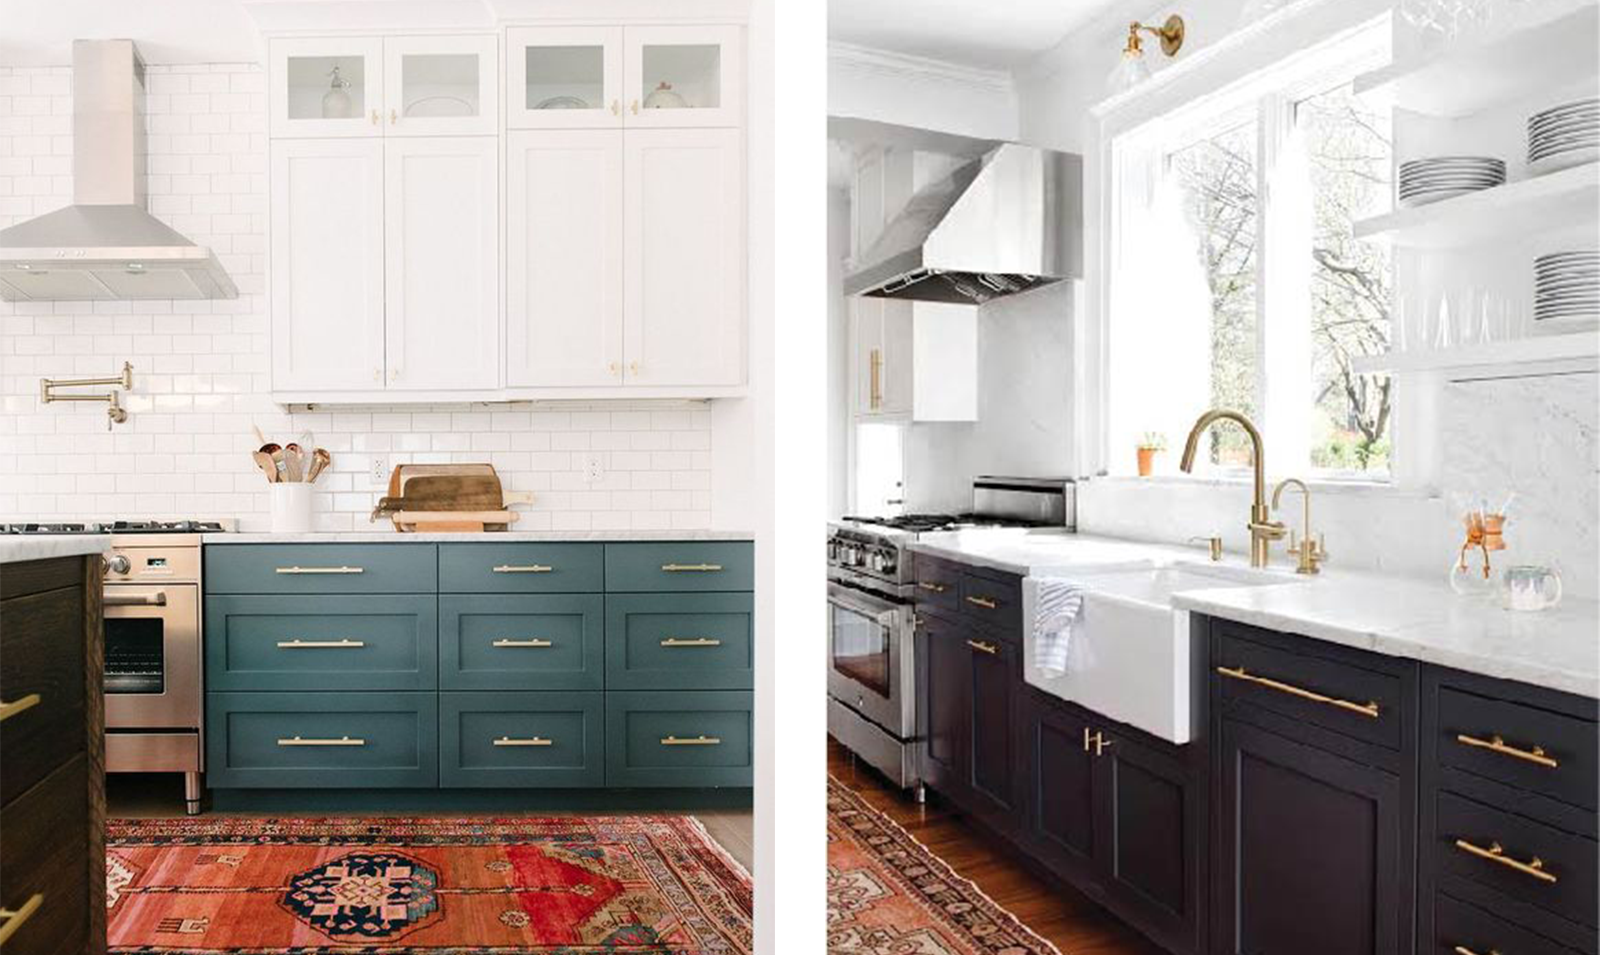 white-kitchens-with-teal-and-navy-cabinets